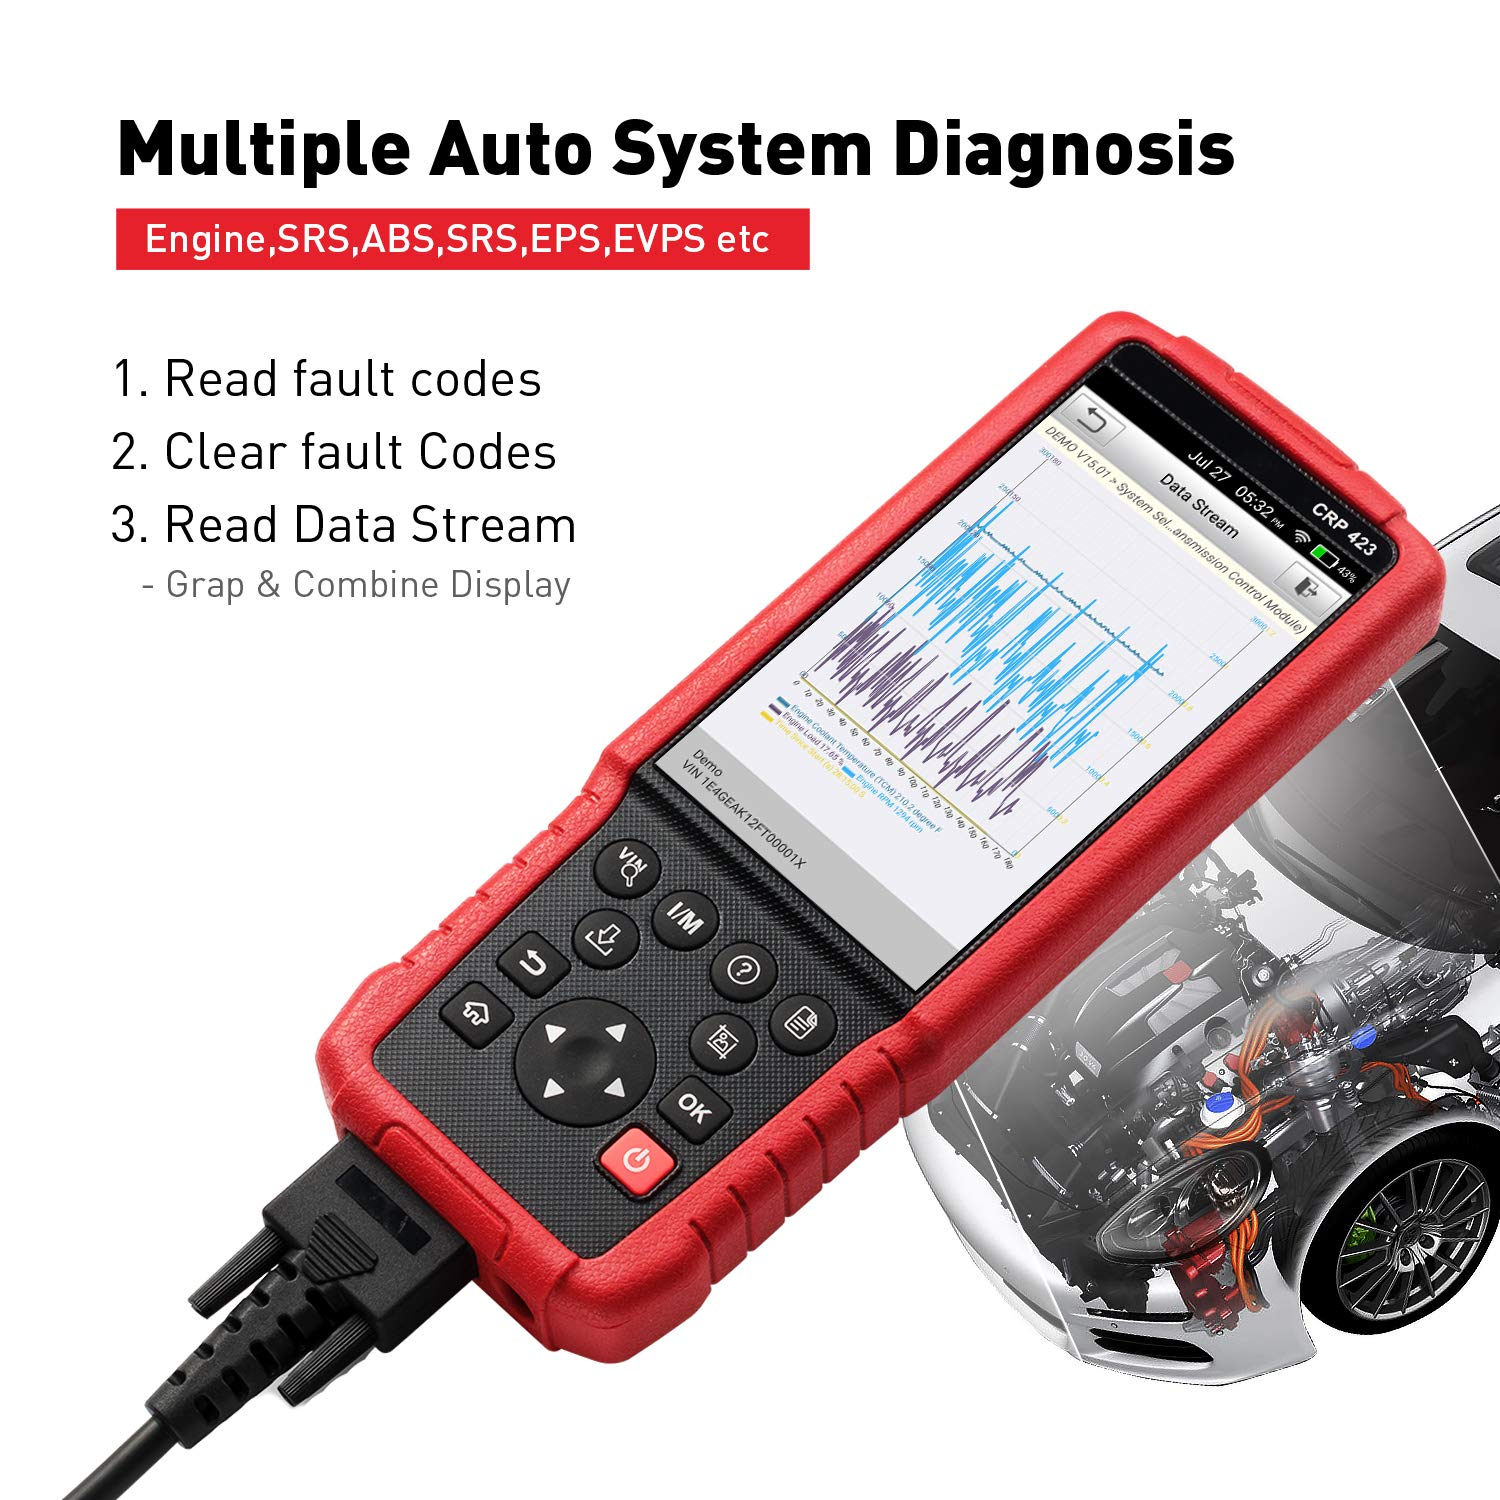 LAUNCH CRP423 OBD2 Diagnostic Scan Tool ENG/TCM/ABS/SRS with Fast VIN  AutoDetect, Android System Online Update-TPMS EL-50448 As Gift